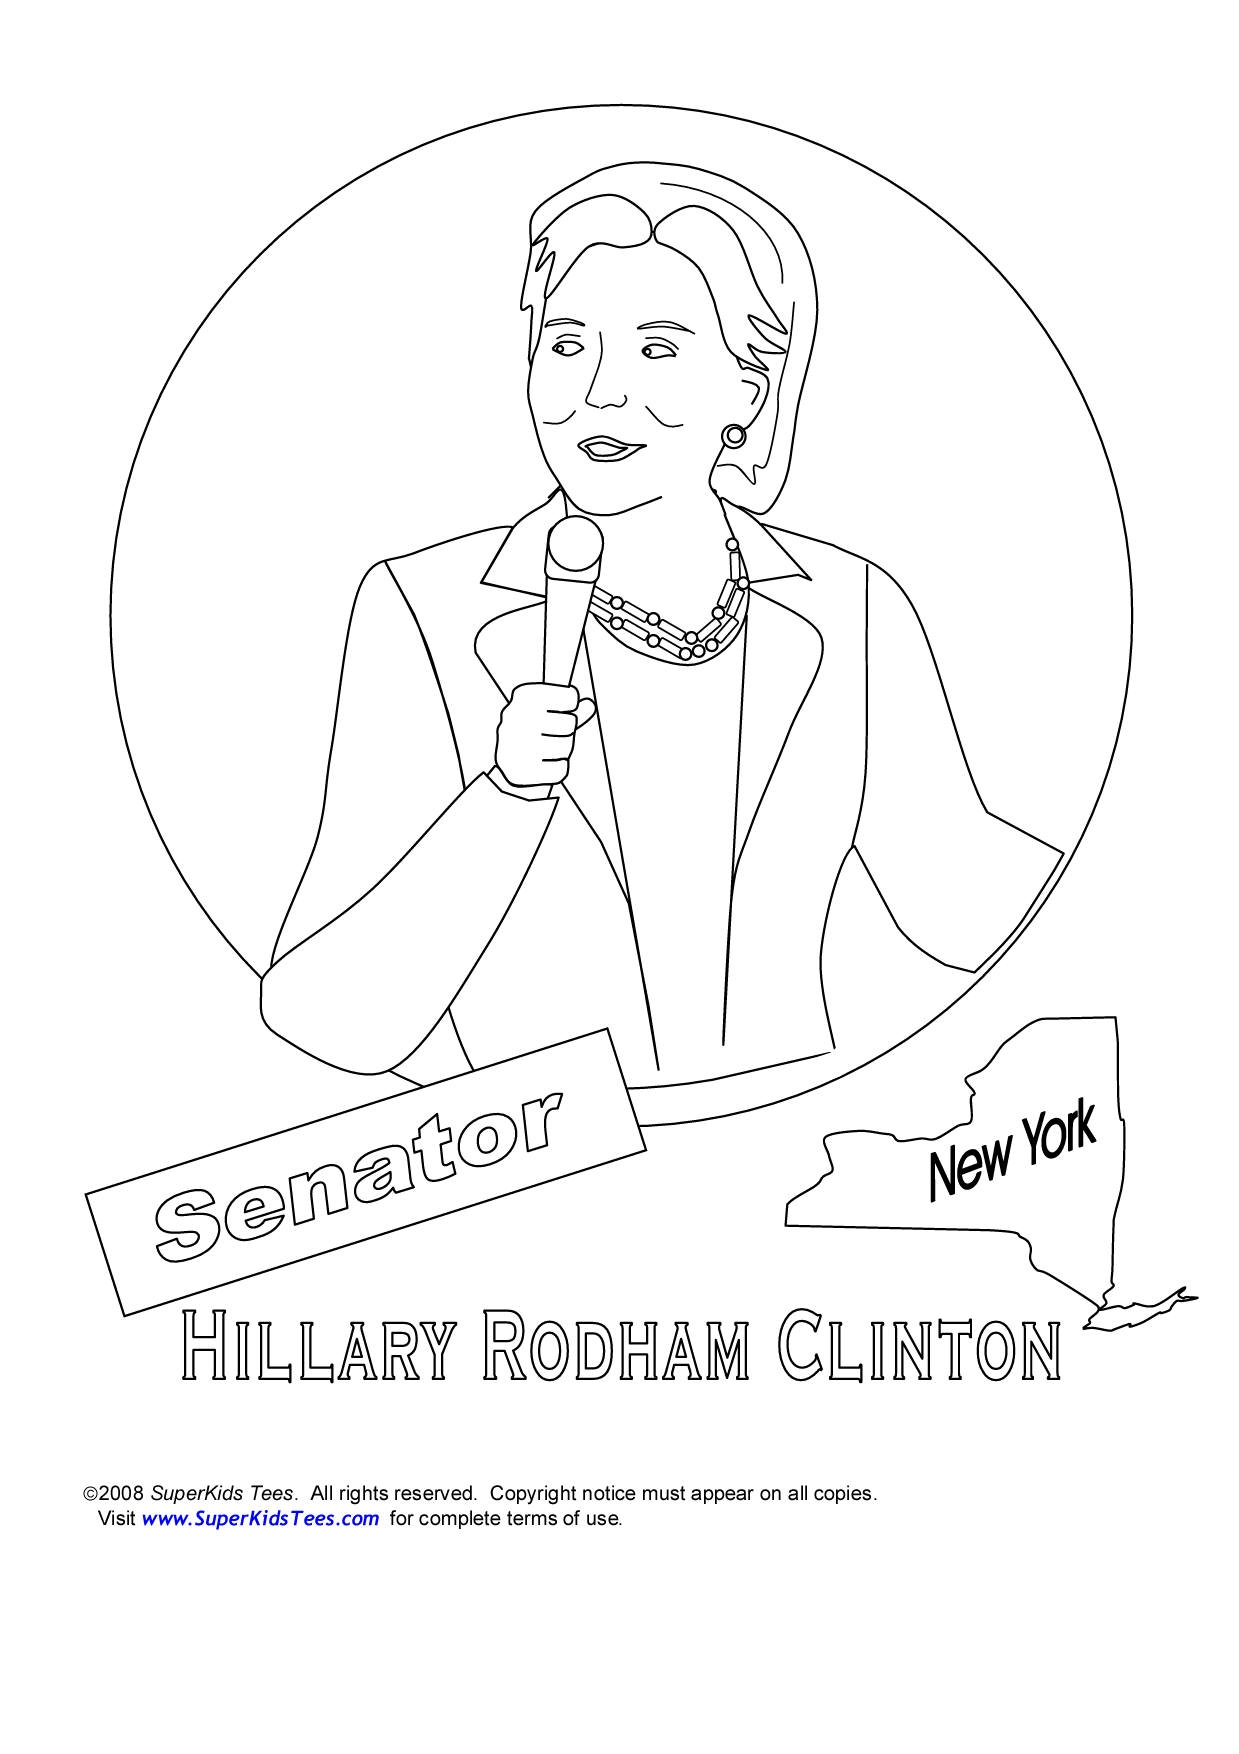 Hillary Clinton Coloring Pages - Hillary Clinton Coloring Pages Collection to Print